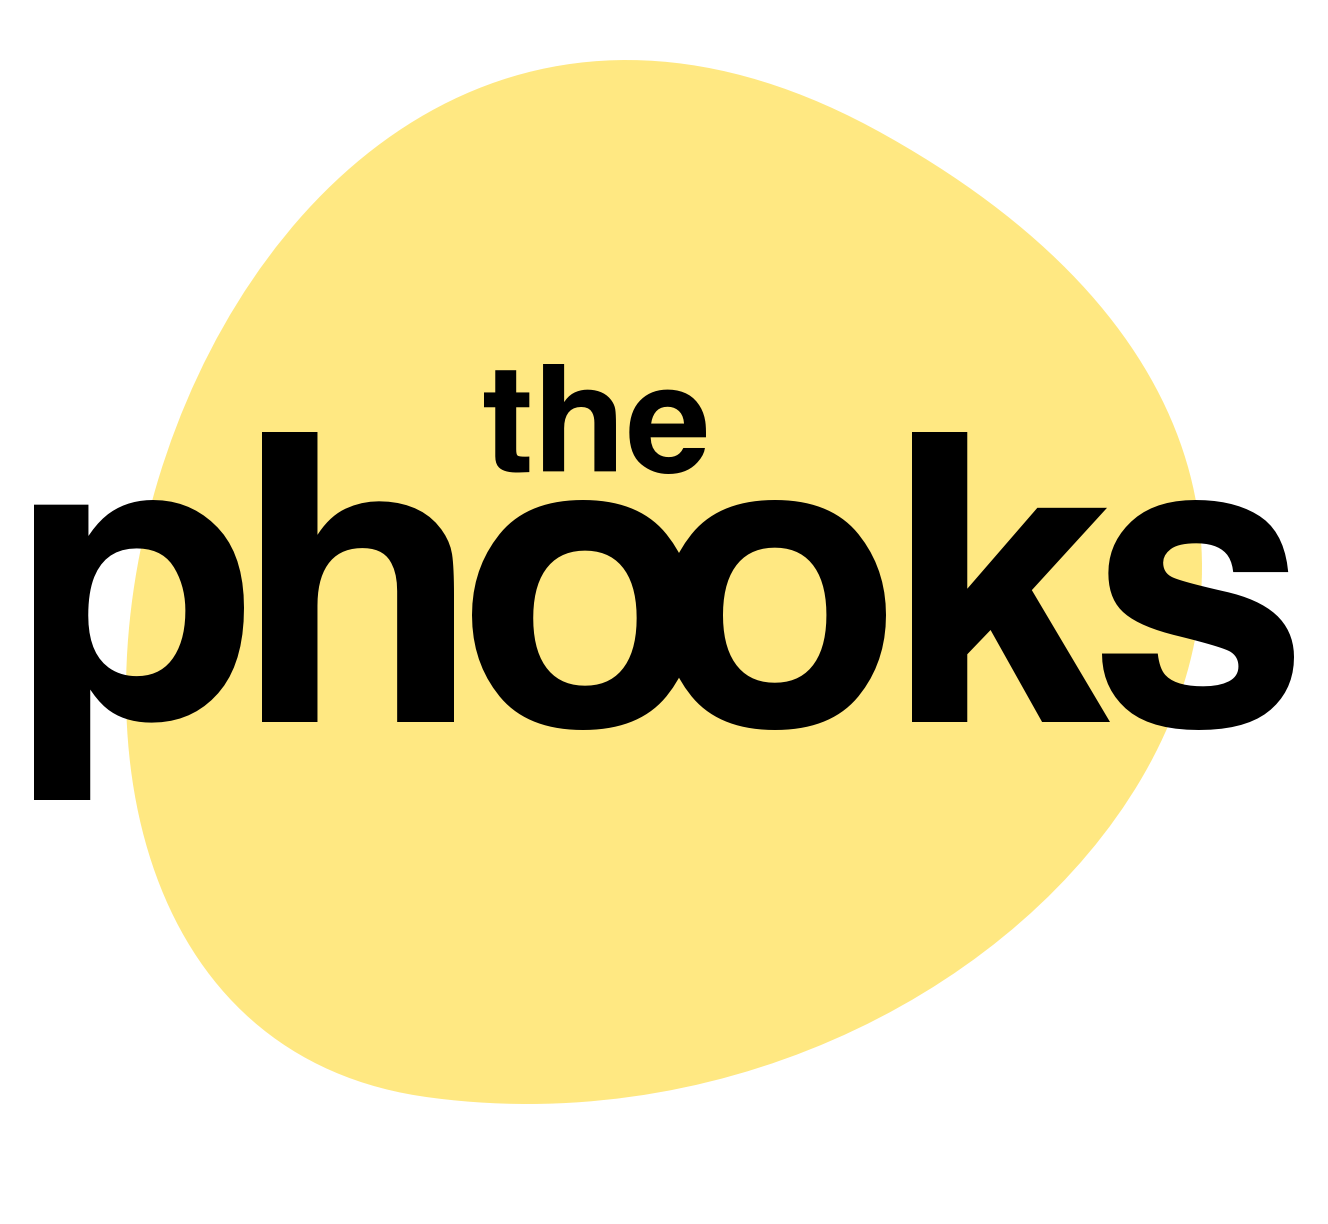 The Phooks